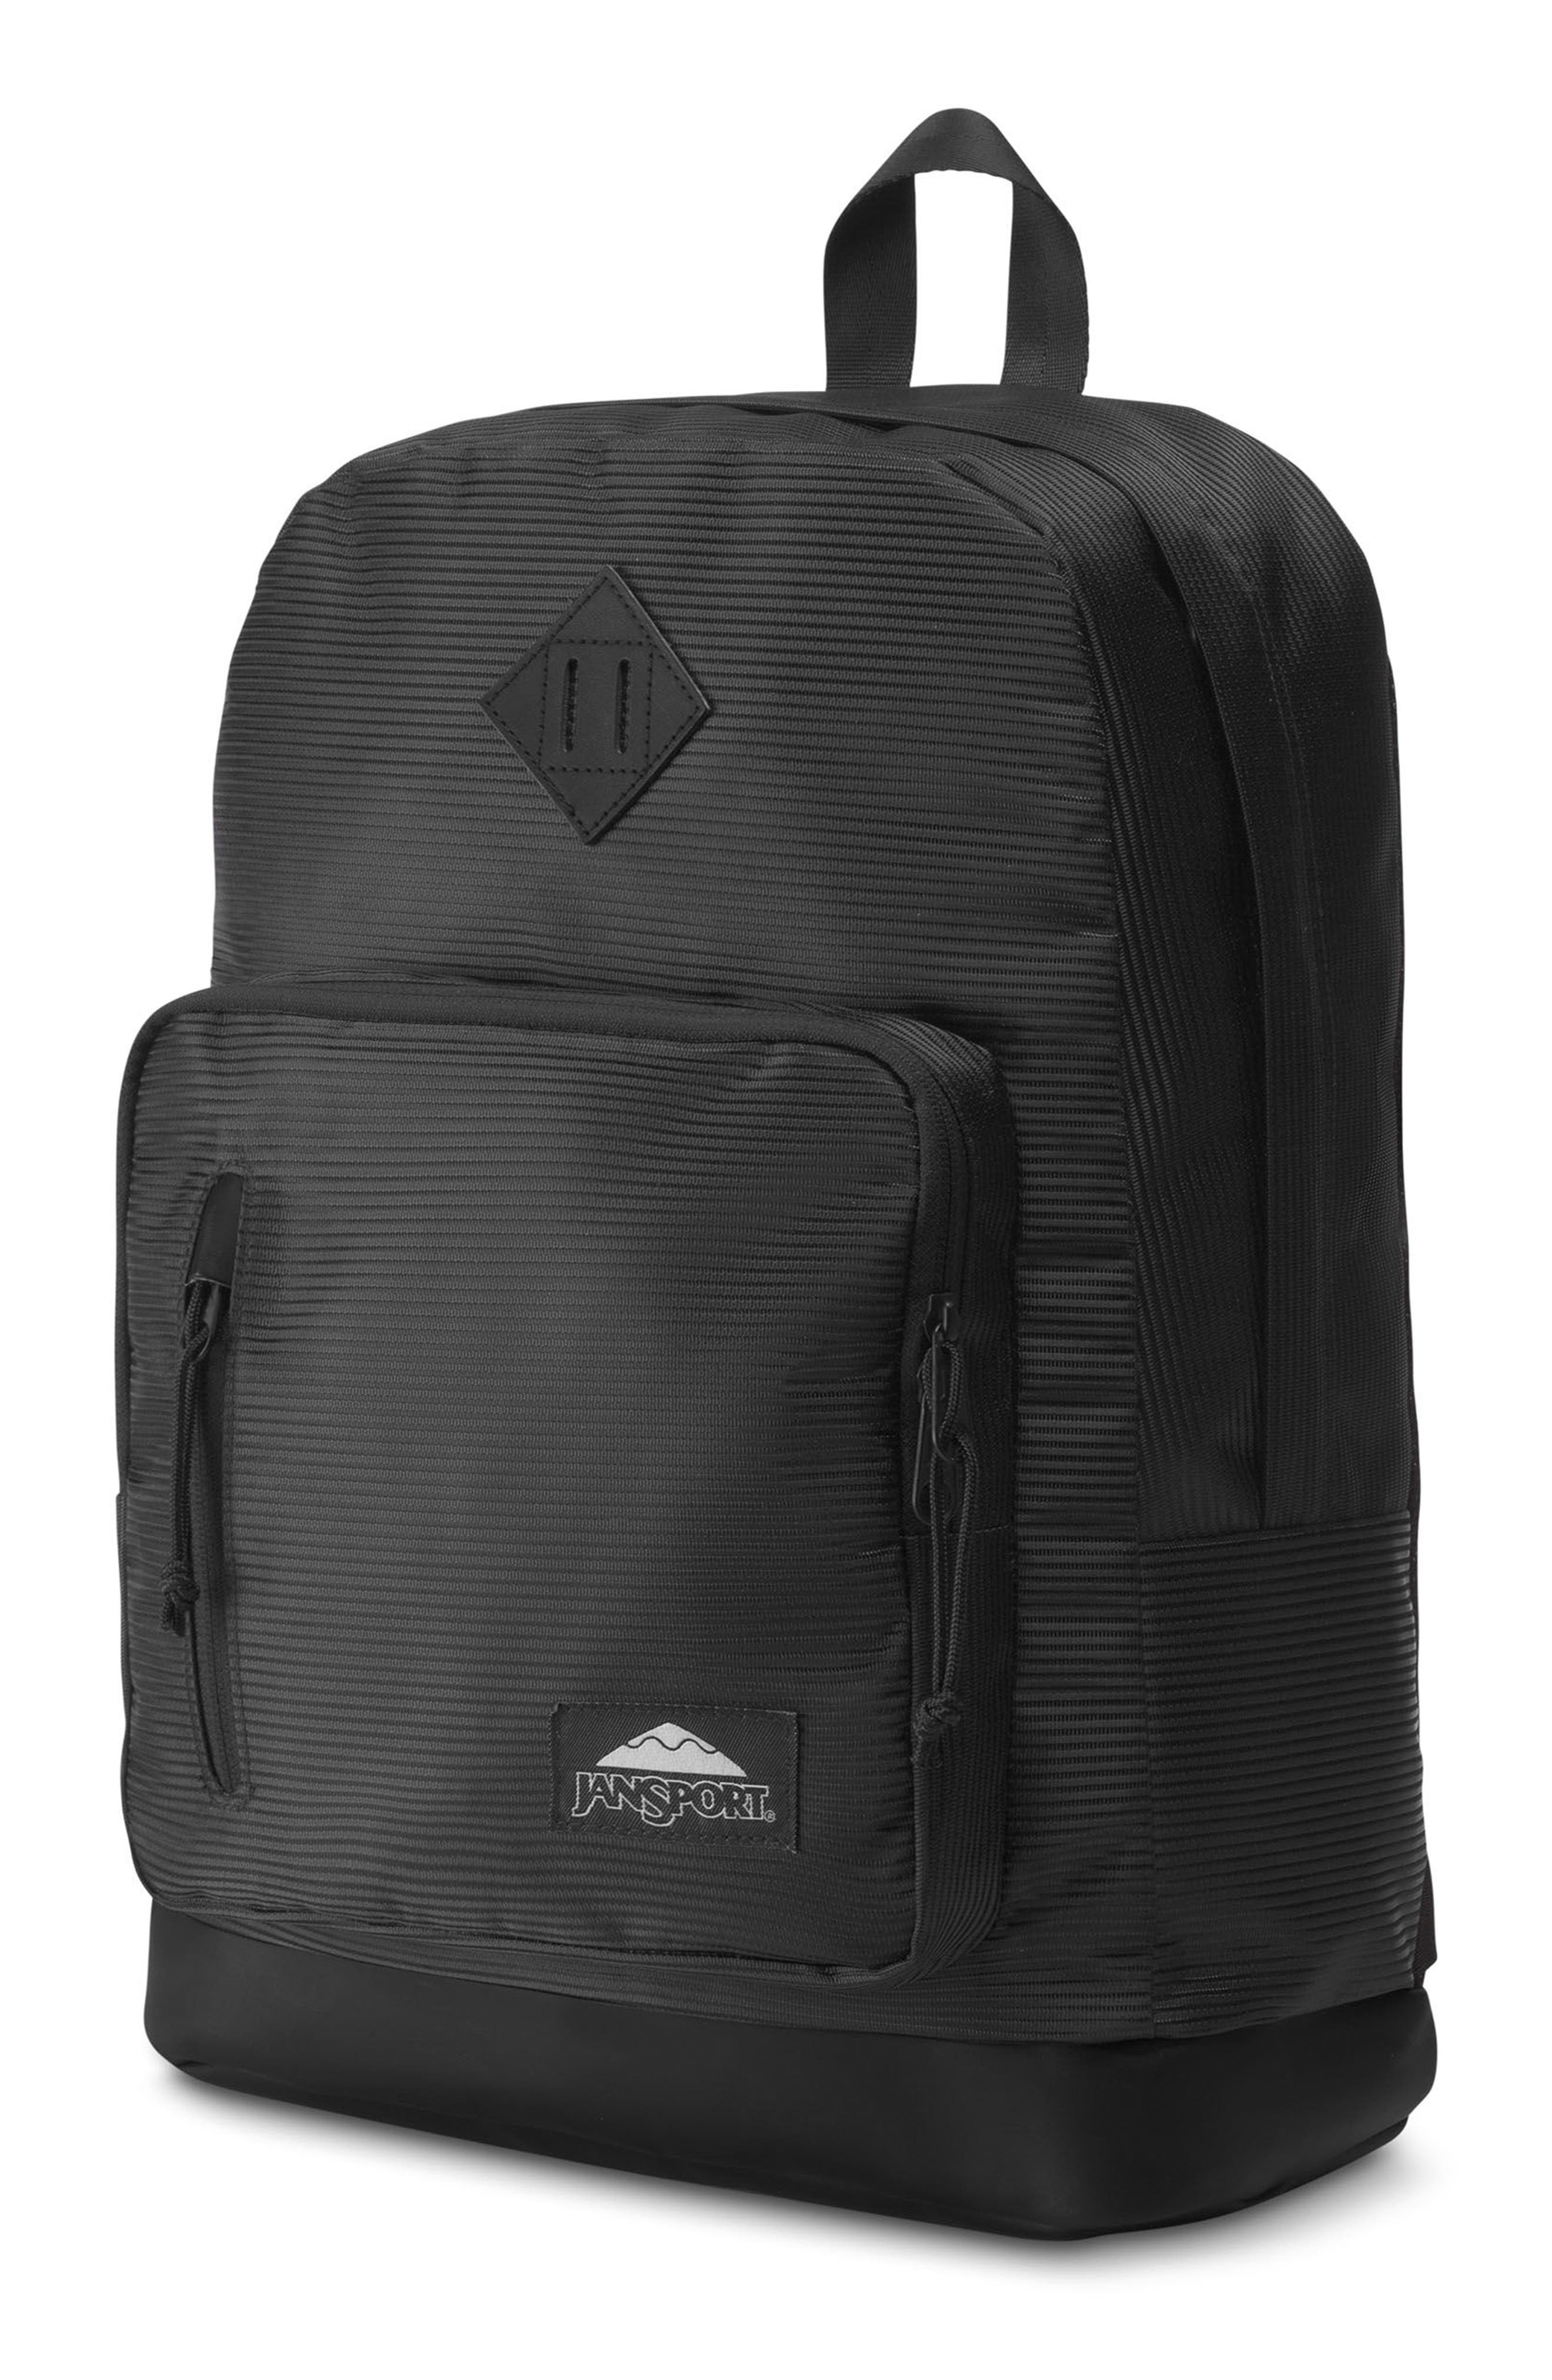 Axiom Backpack,                             Alternate thumbnail 5, color,                             Black Line